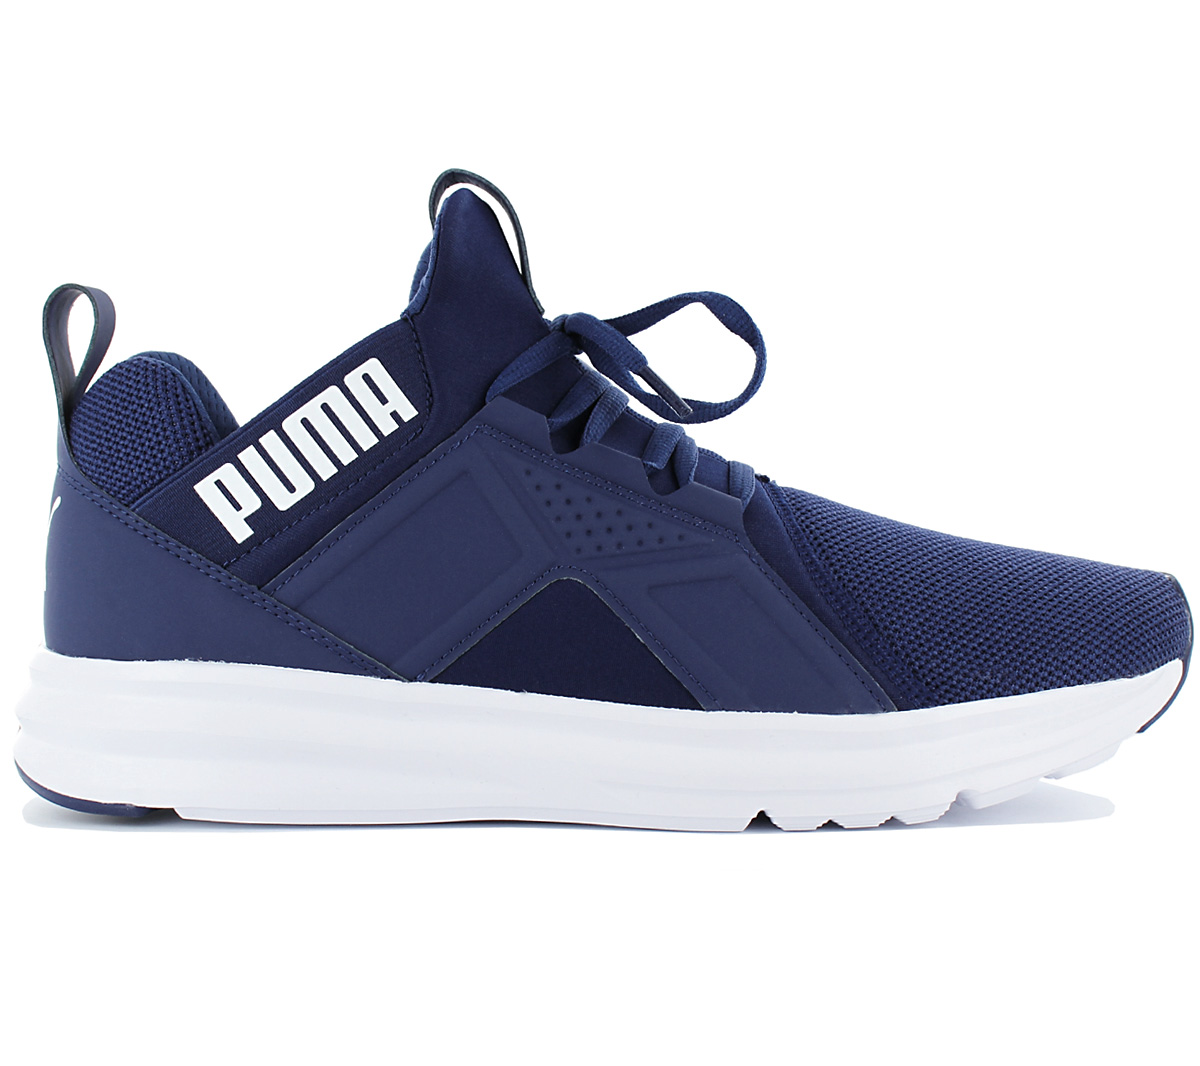 puma enzo herren sneaker schuhe turnschuhe freizeit strap terrain mesh neu ebay. Black Bedroom Furniture Sets. Home Design Ideas